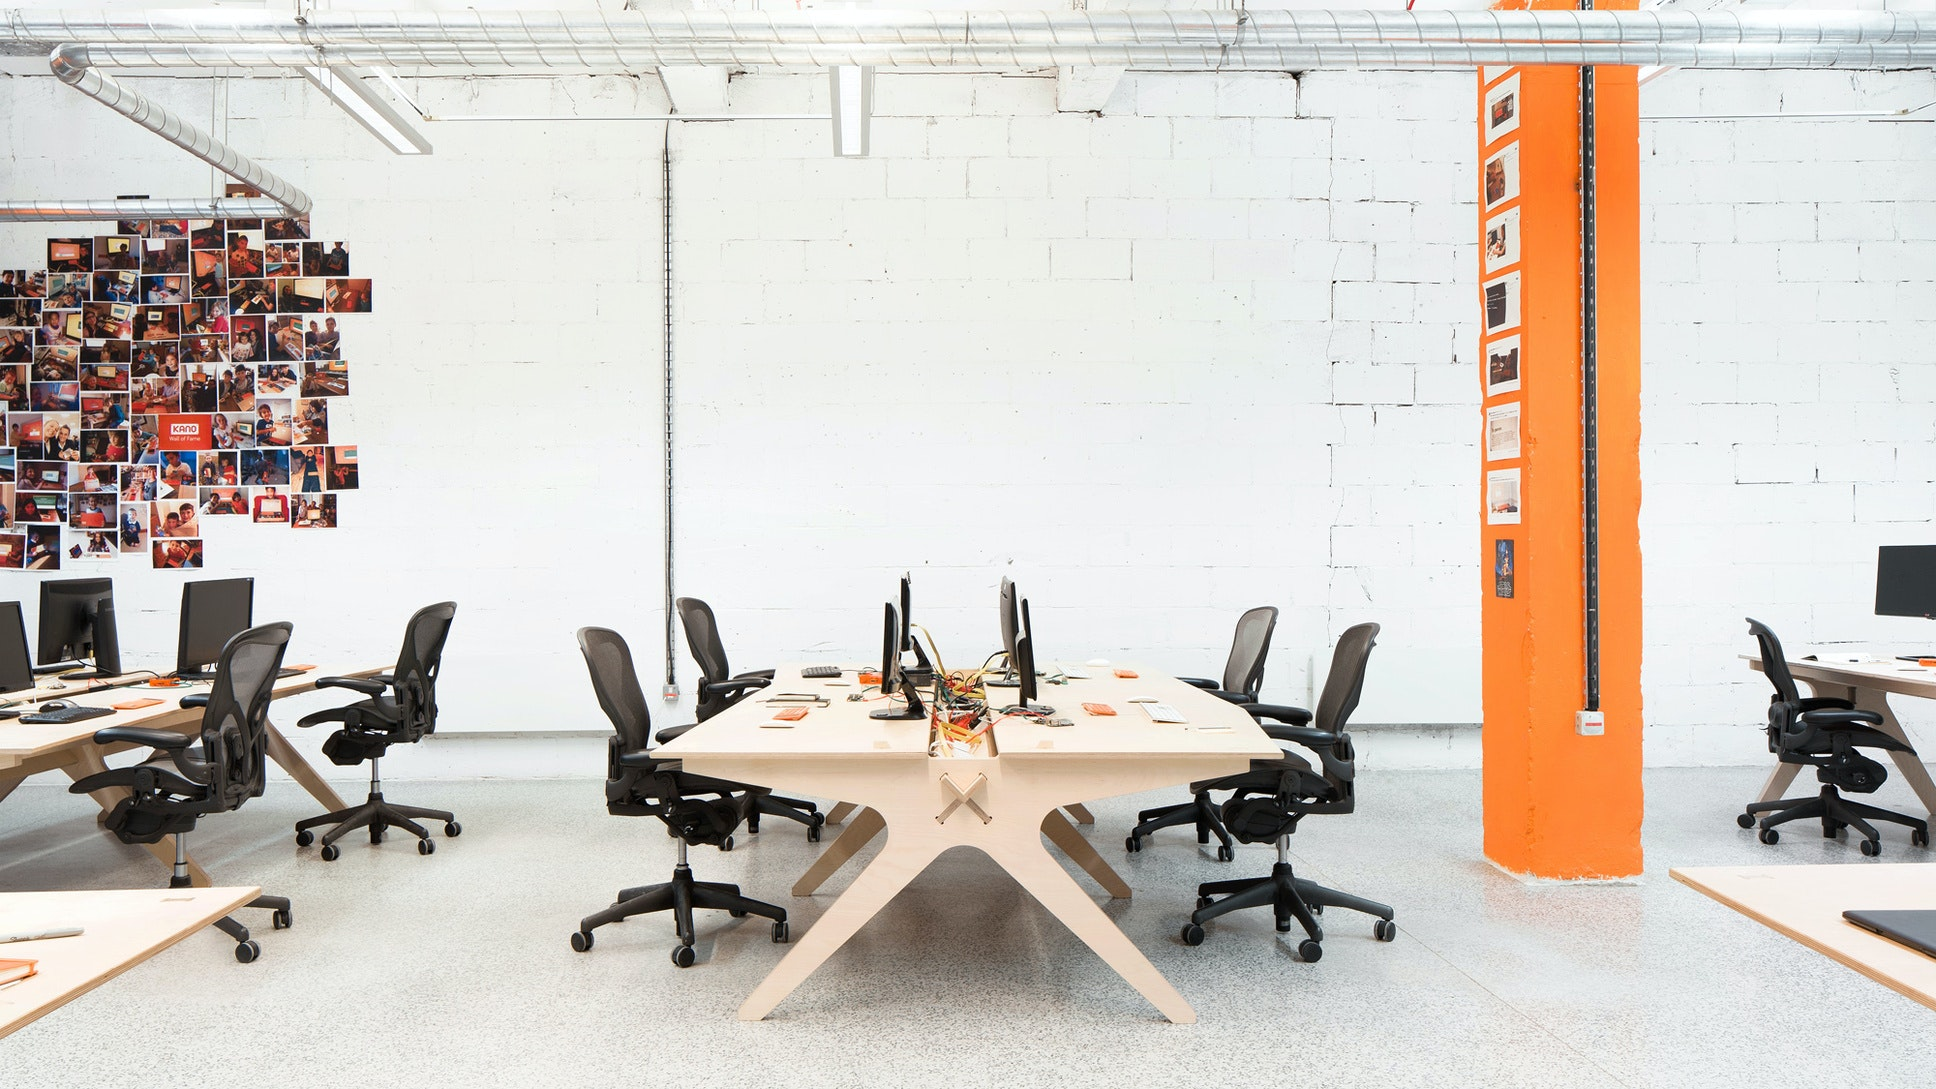 The Offices For Kano Feature Bespoke Furniture By Opendesk. Images Courtesy  Opendesk.